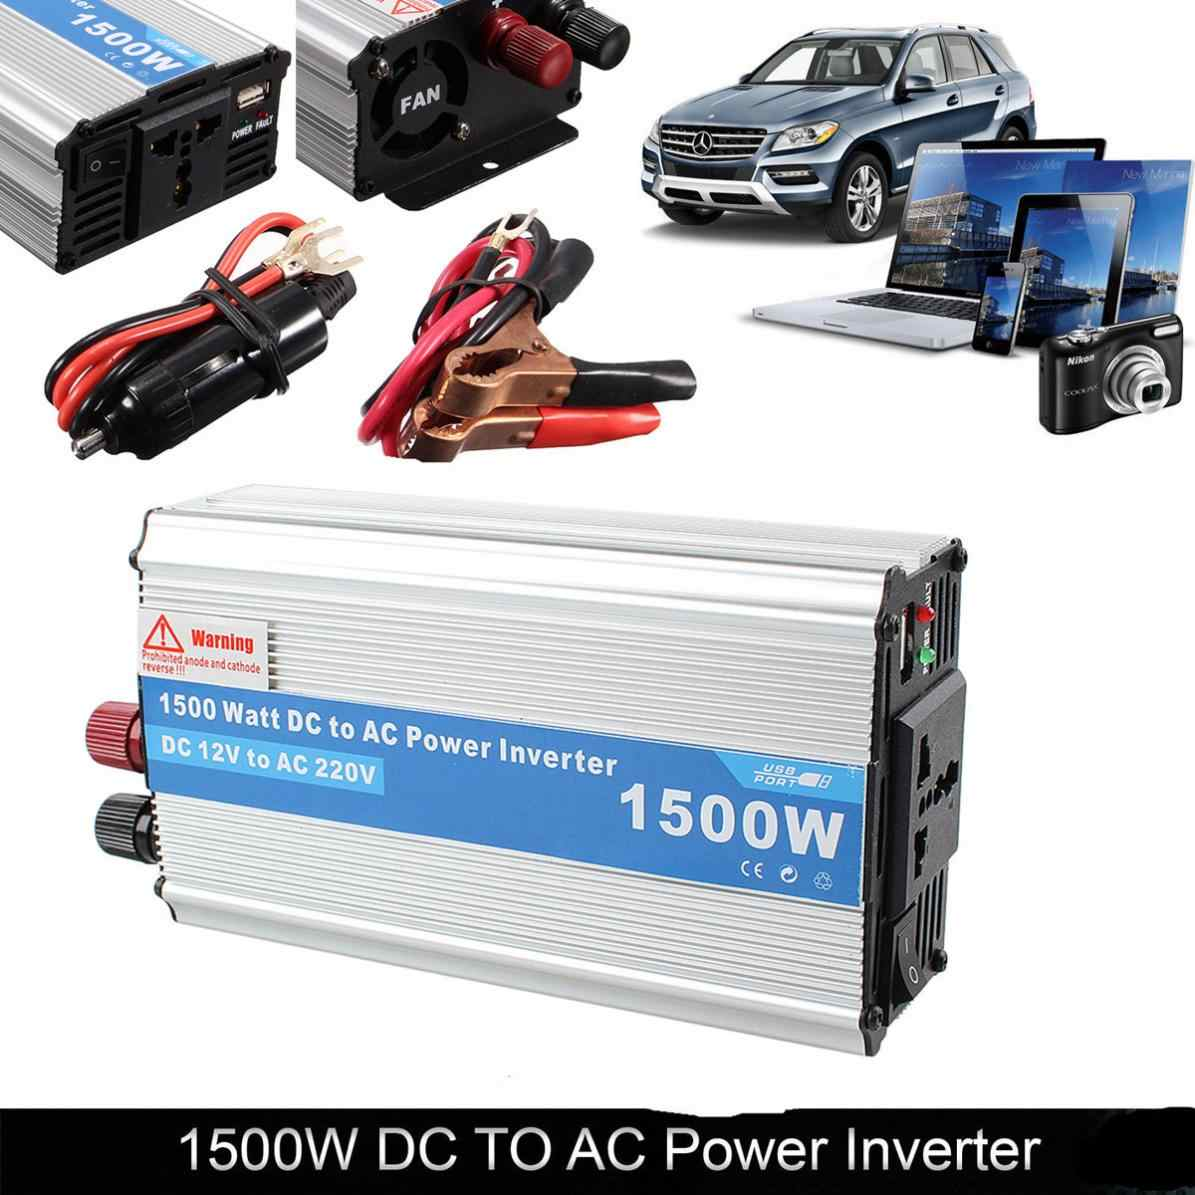 1500W Car Power Inverter DC 12V to AC 220V Power Charger Converter Car Inverter Adapter for Electronic Products